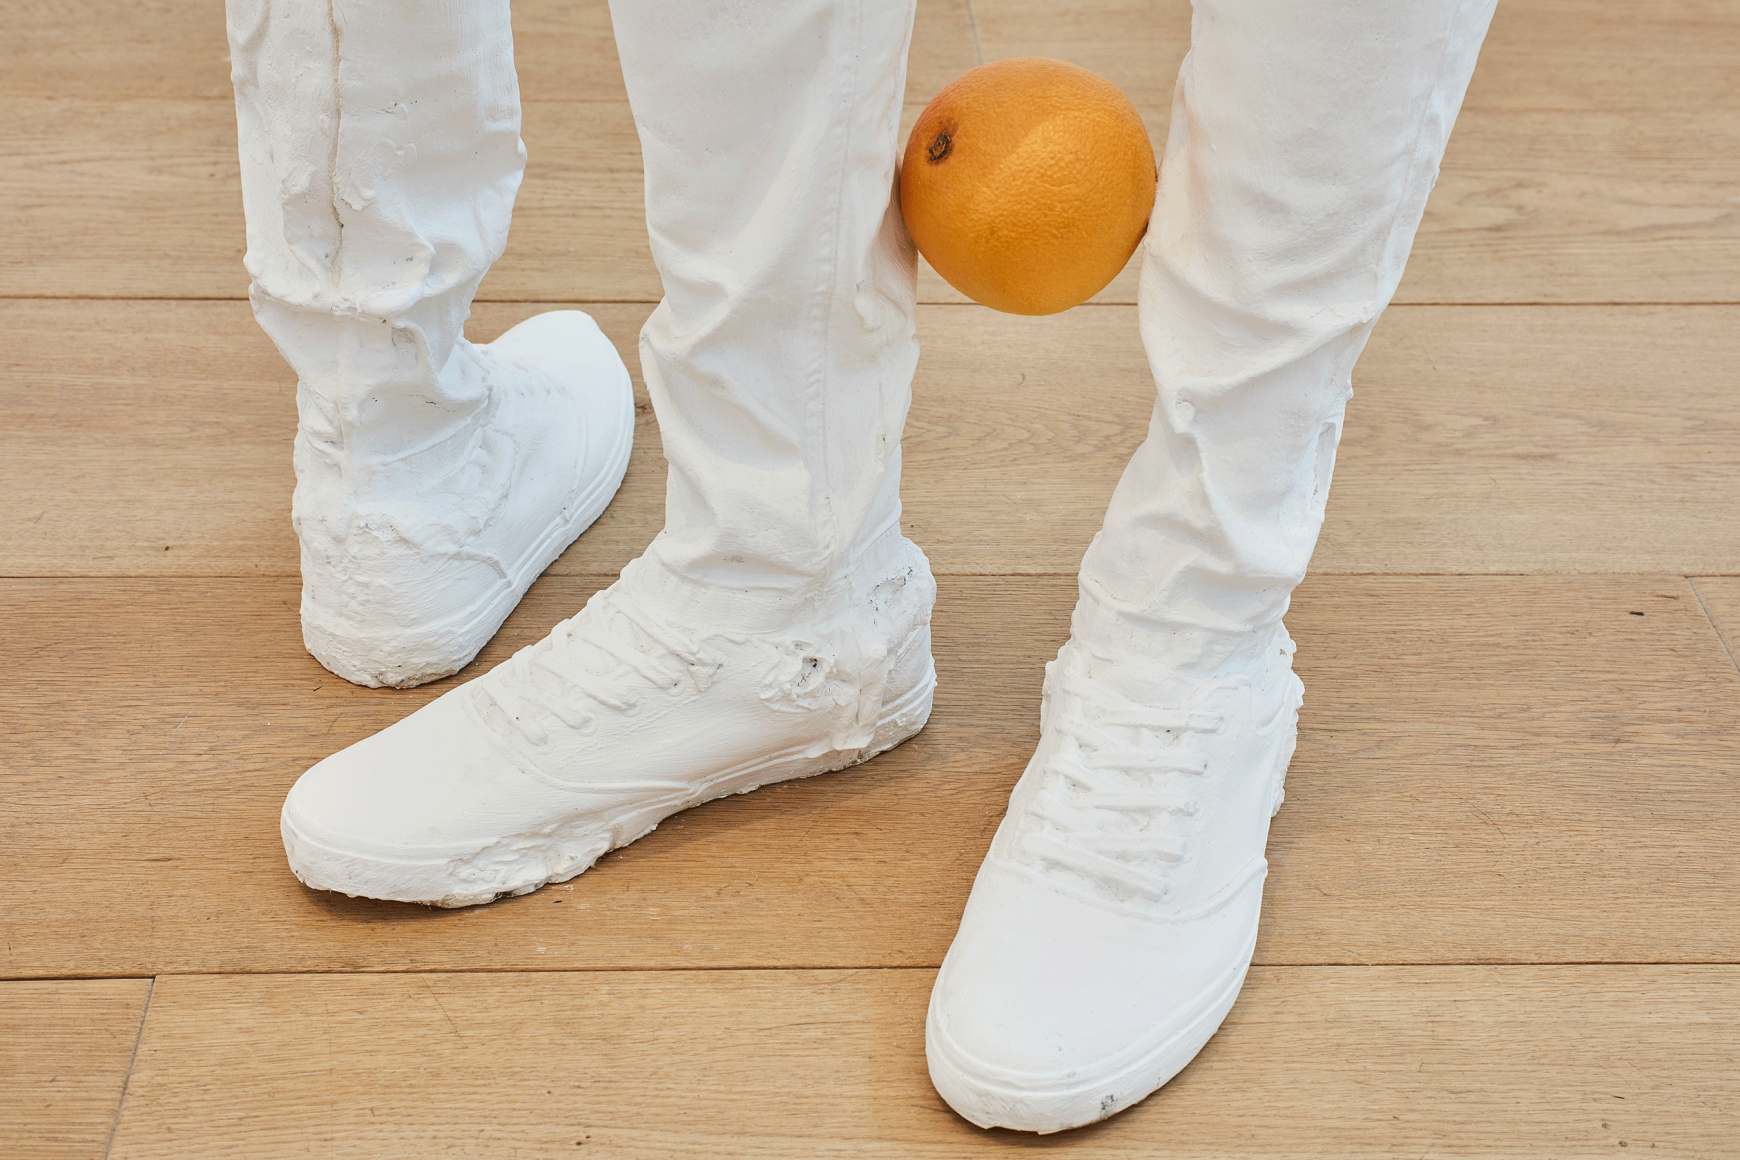 ERWIN WURM, Untitled (with fruits) (One Minute Forever), 2019 (detail)